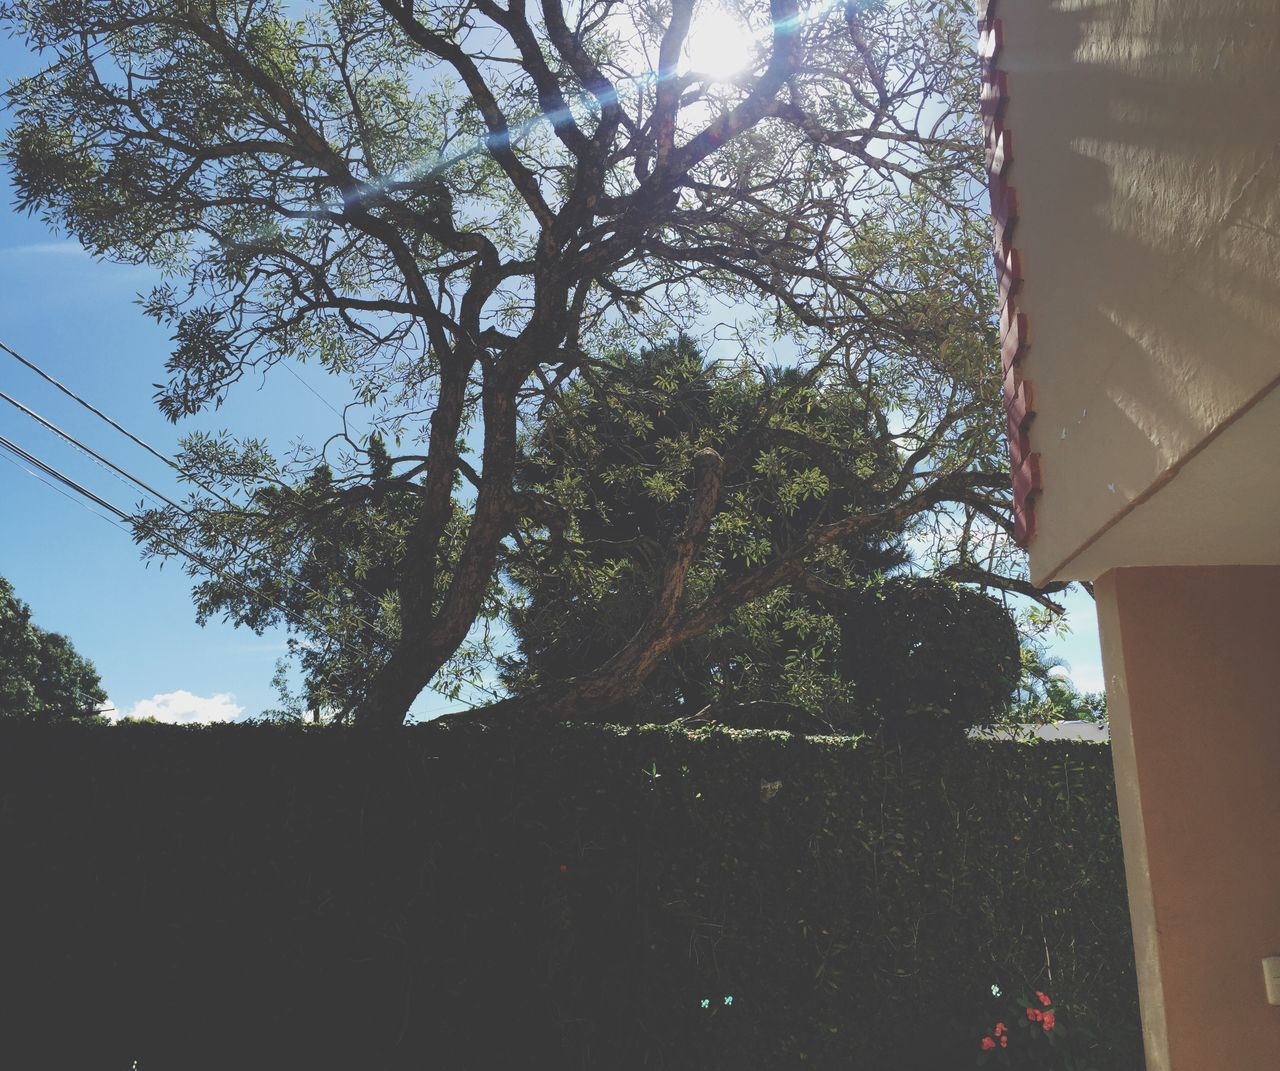 tree, day, low angle view, nature, no people, outdoors, growth, architecture, sky, building exterior